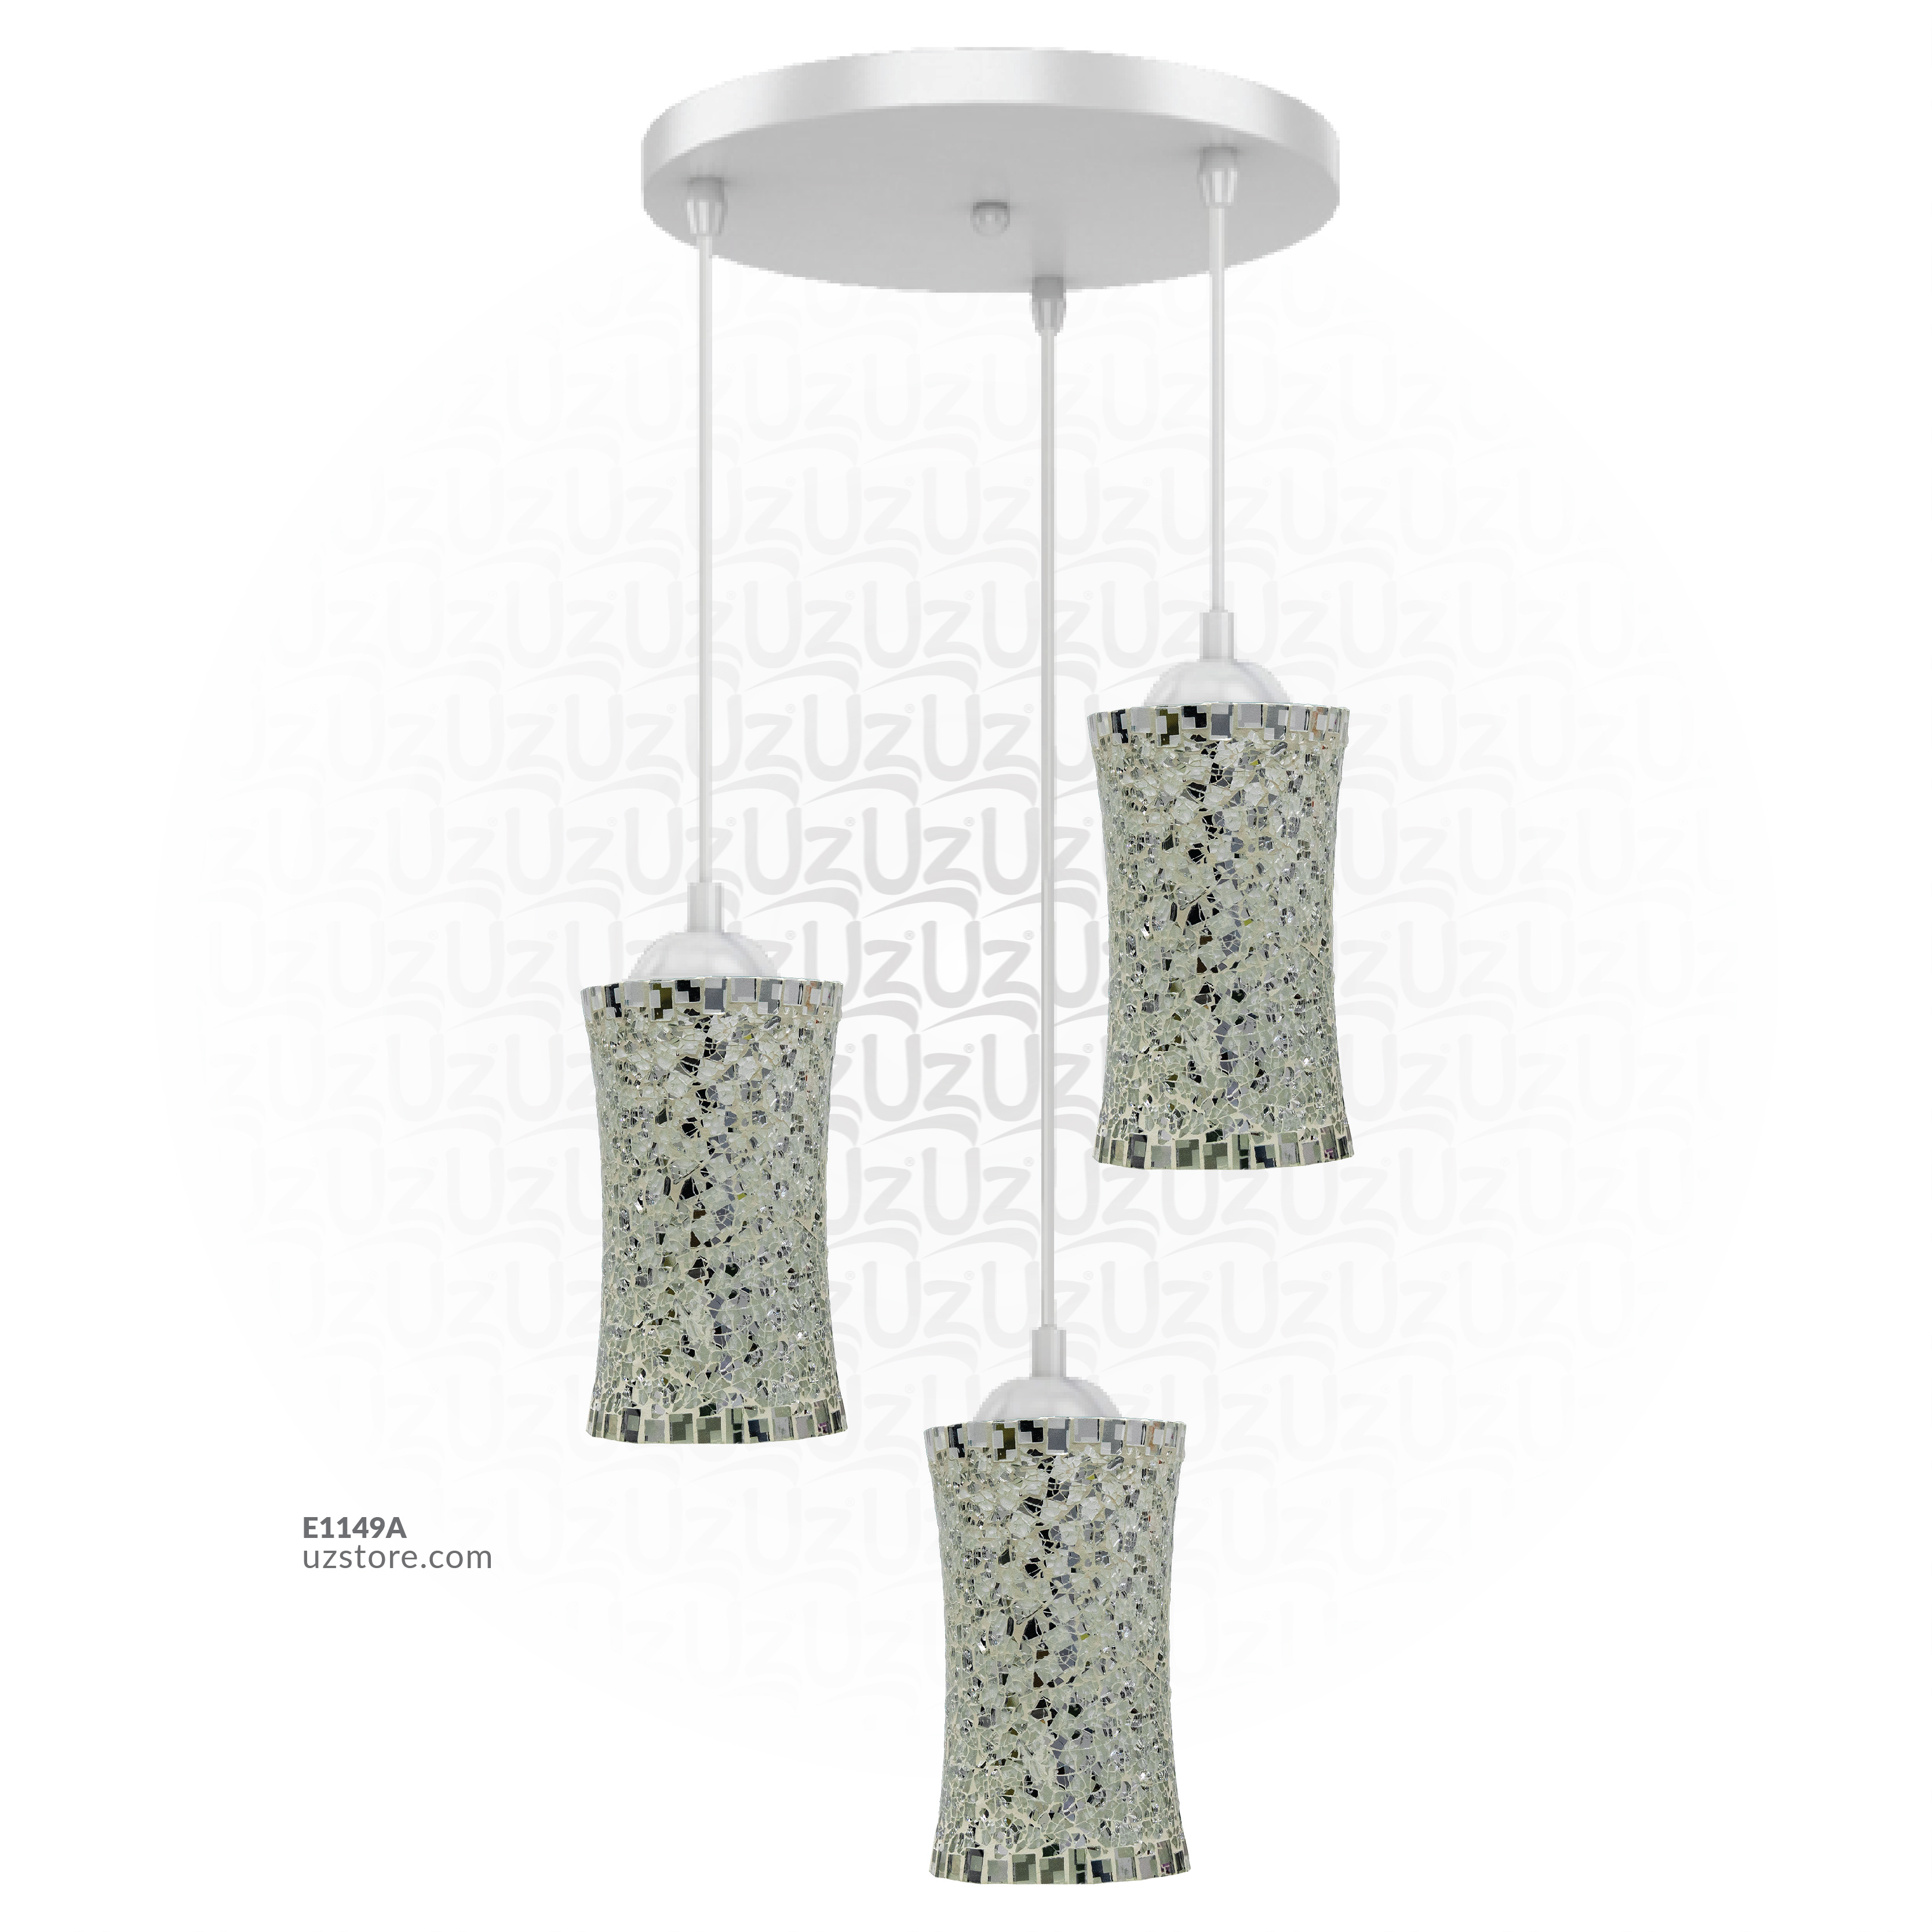 Trible Celling Mosaic Glass Light